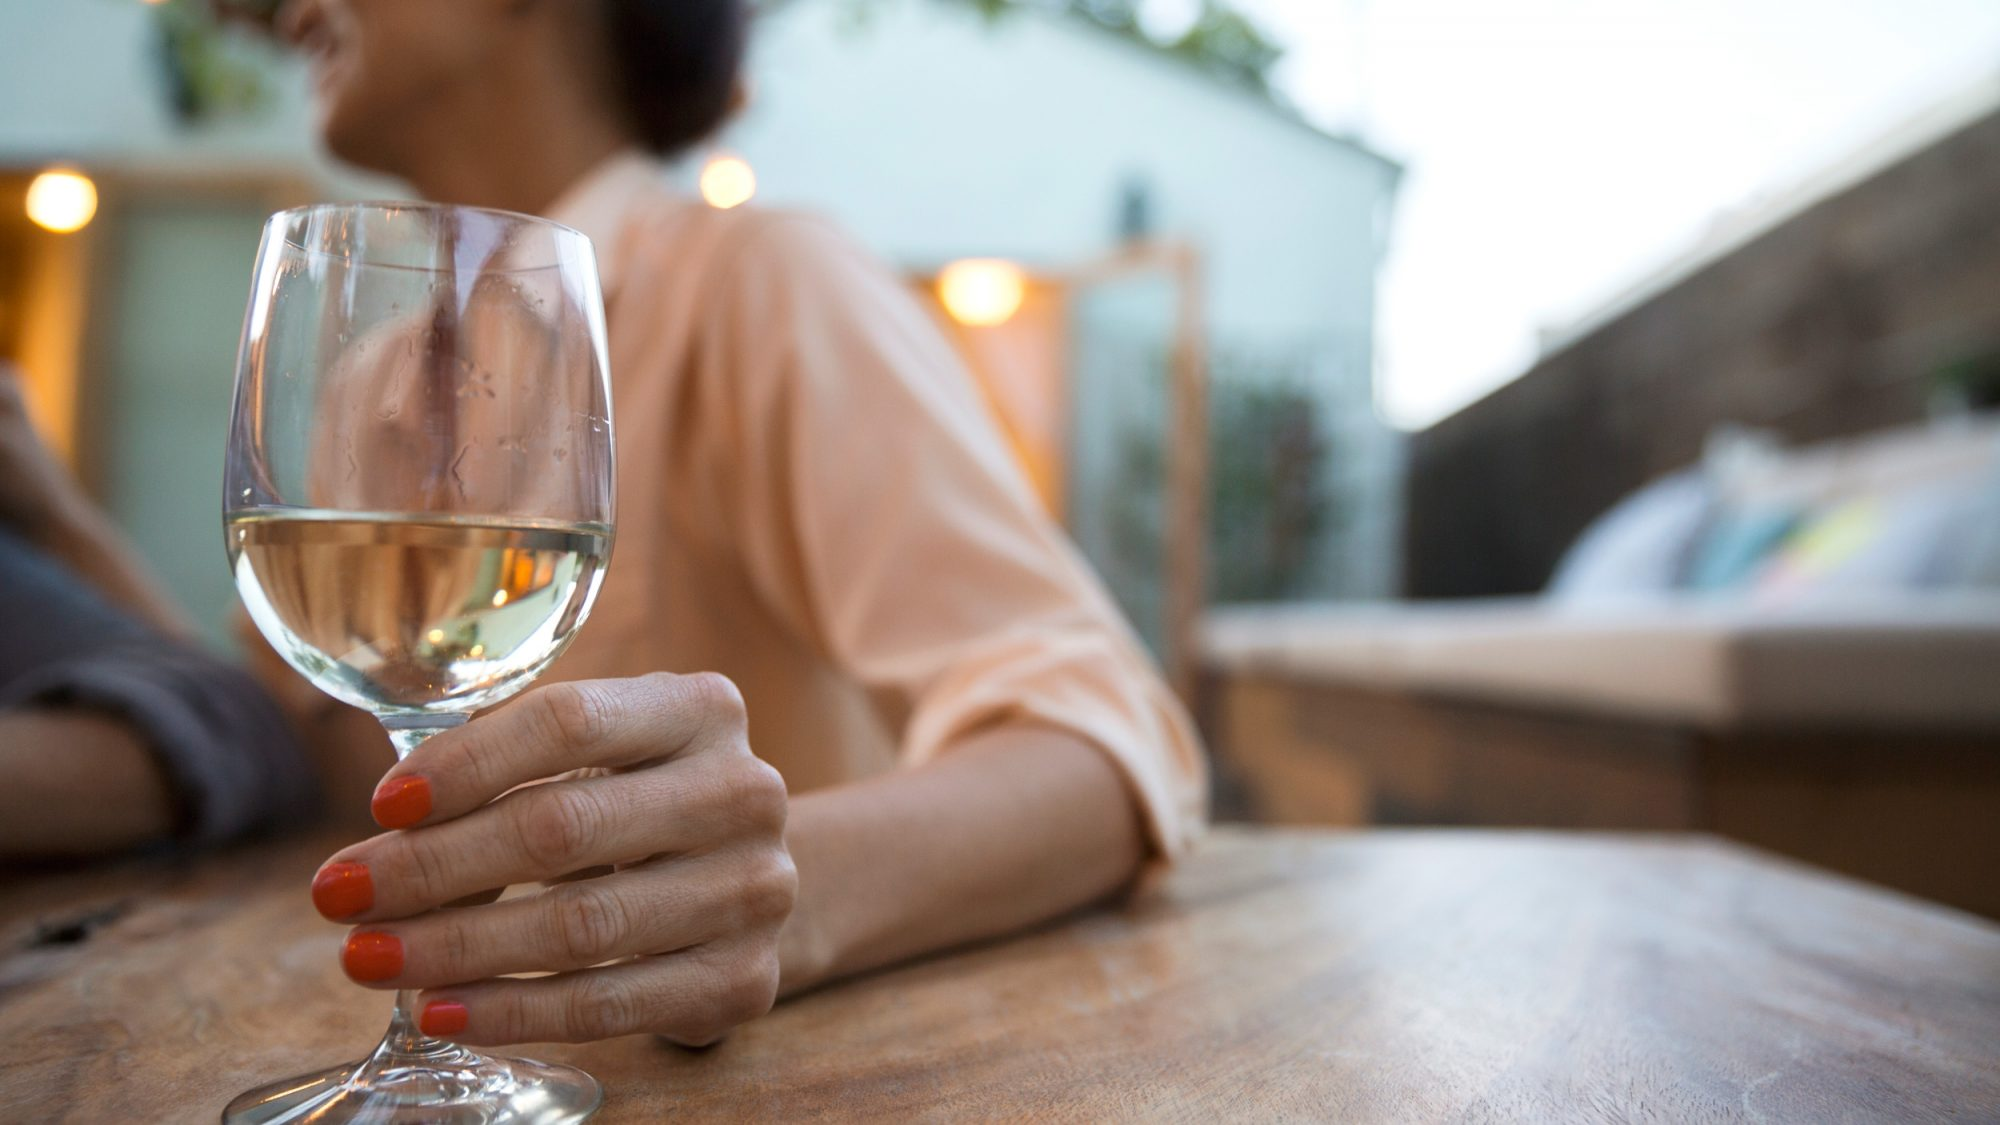 Wine Damages Fertility